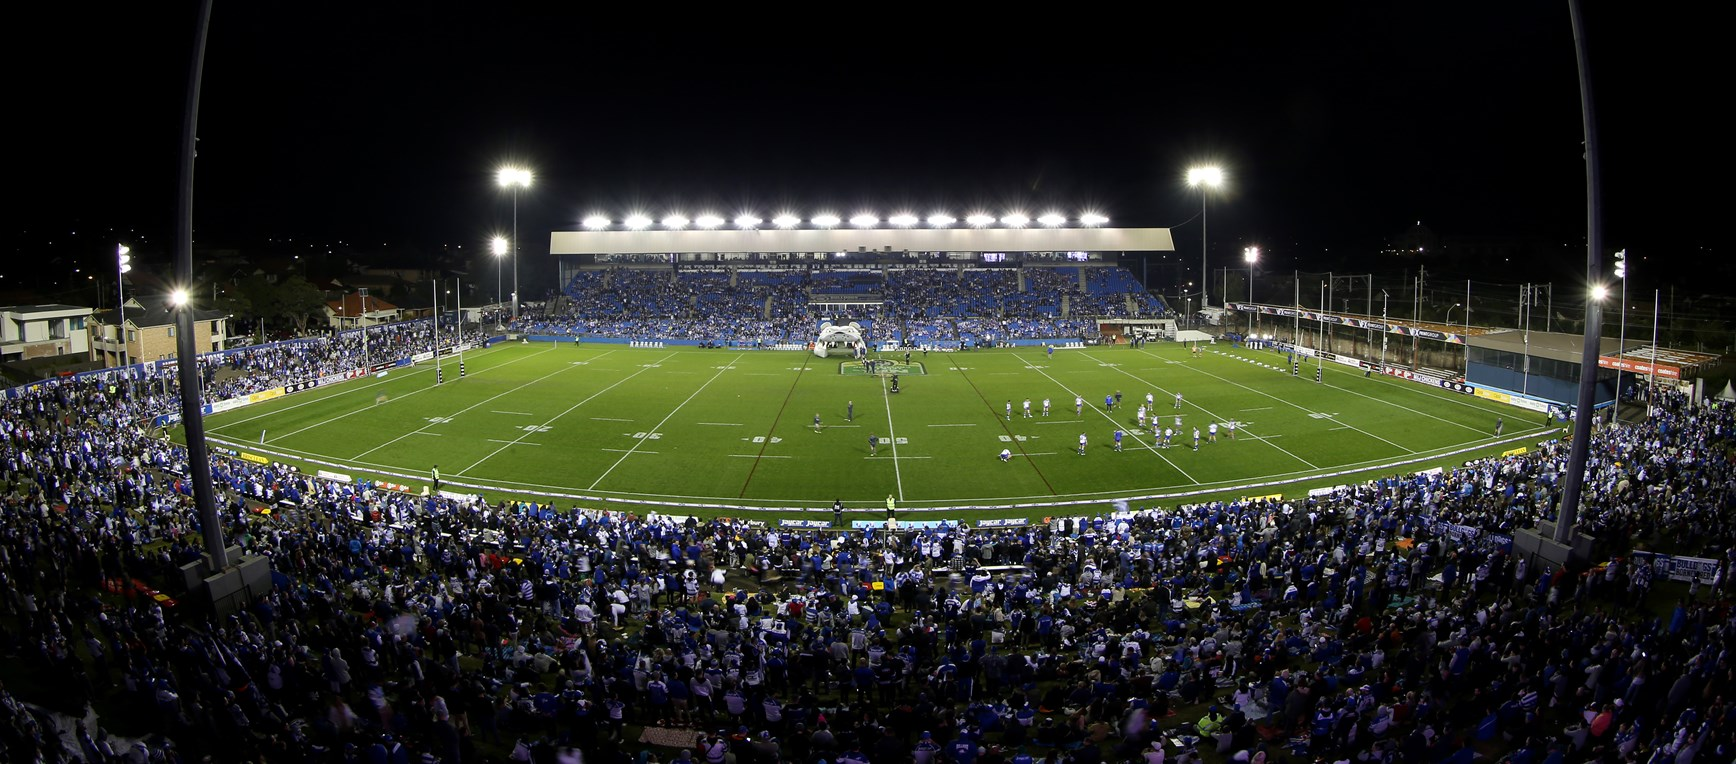 Back to Belmore Photo Gallery